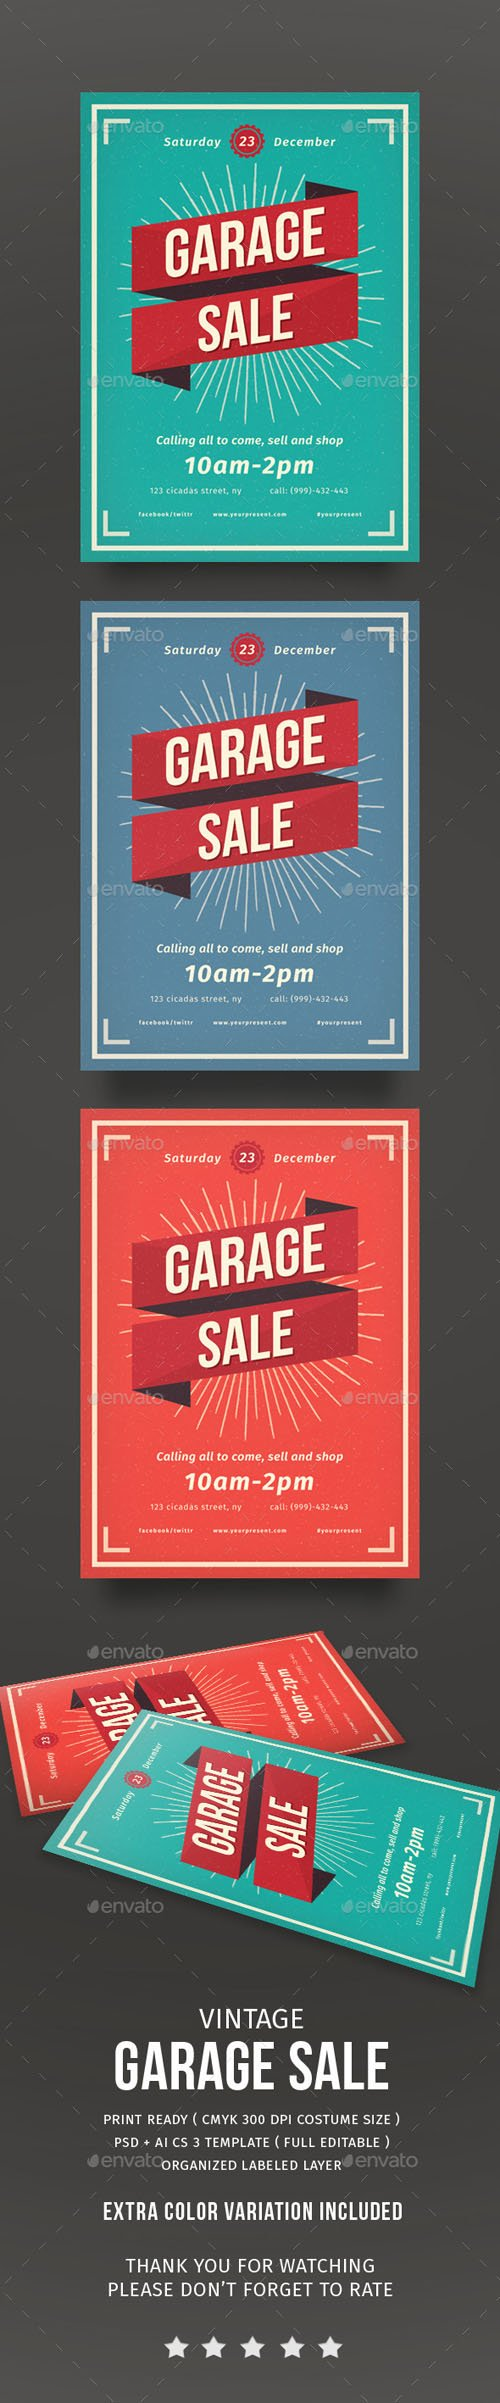 Vintage Garage Sale flayer 14118689